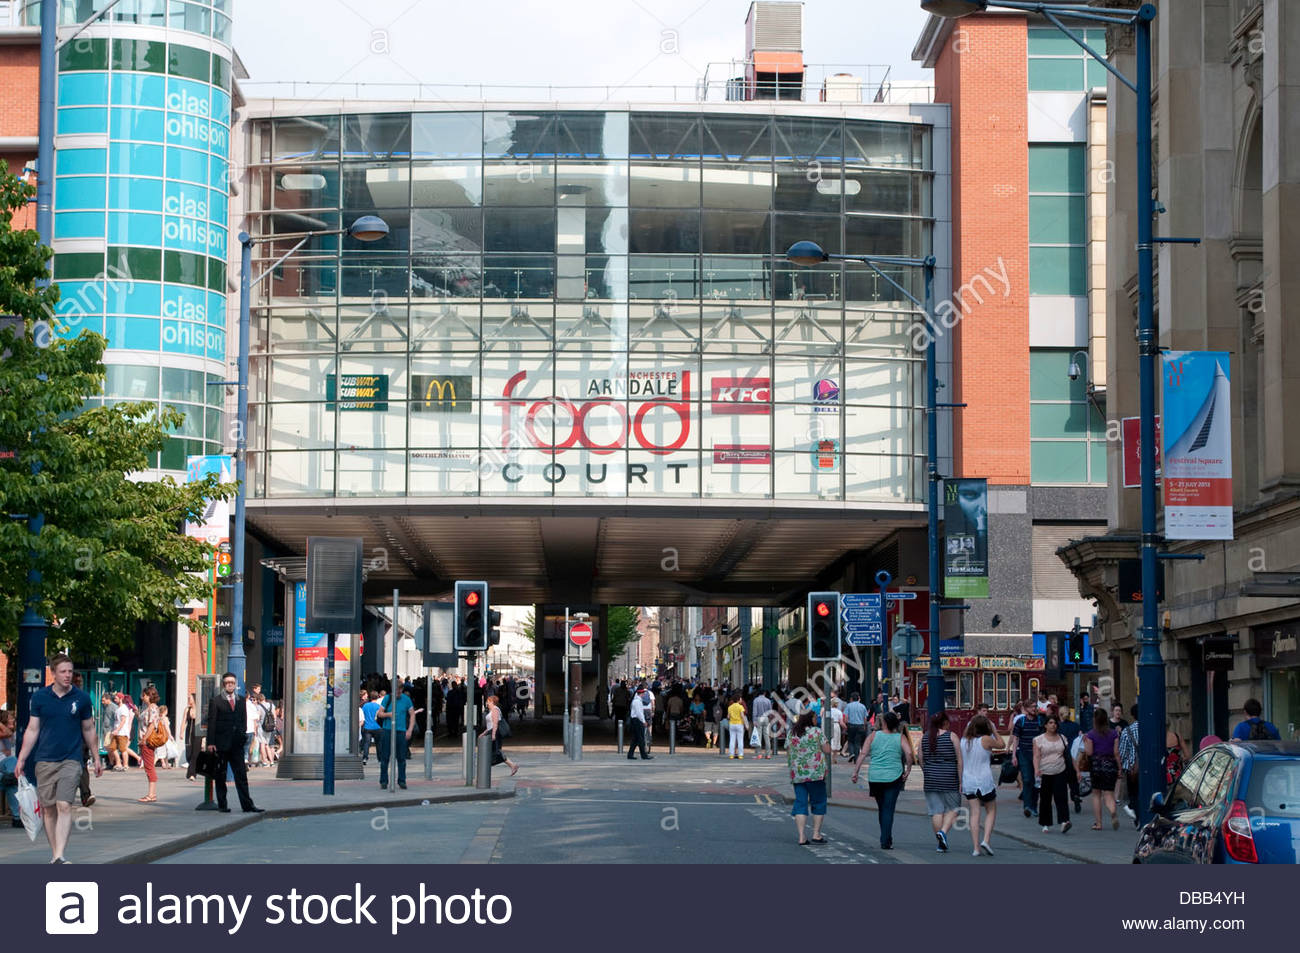 Shops and people at Exchange Square, Manchester, UK - Stock Image